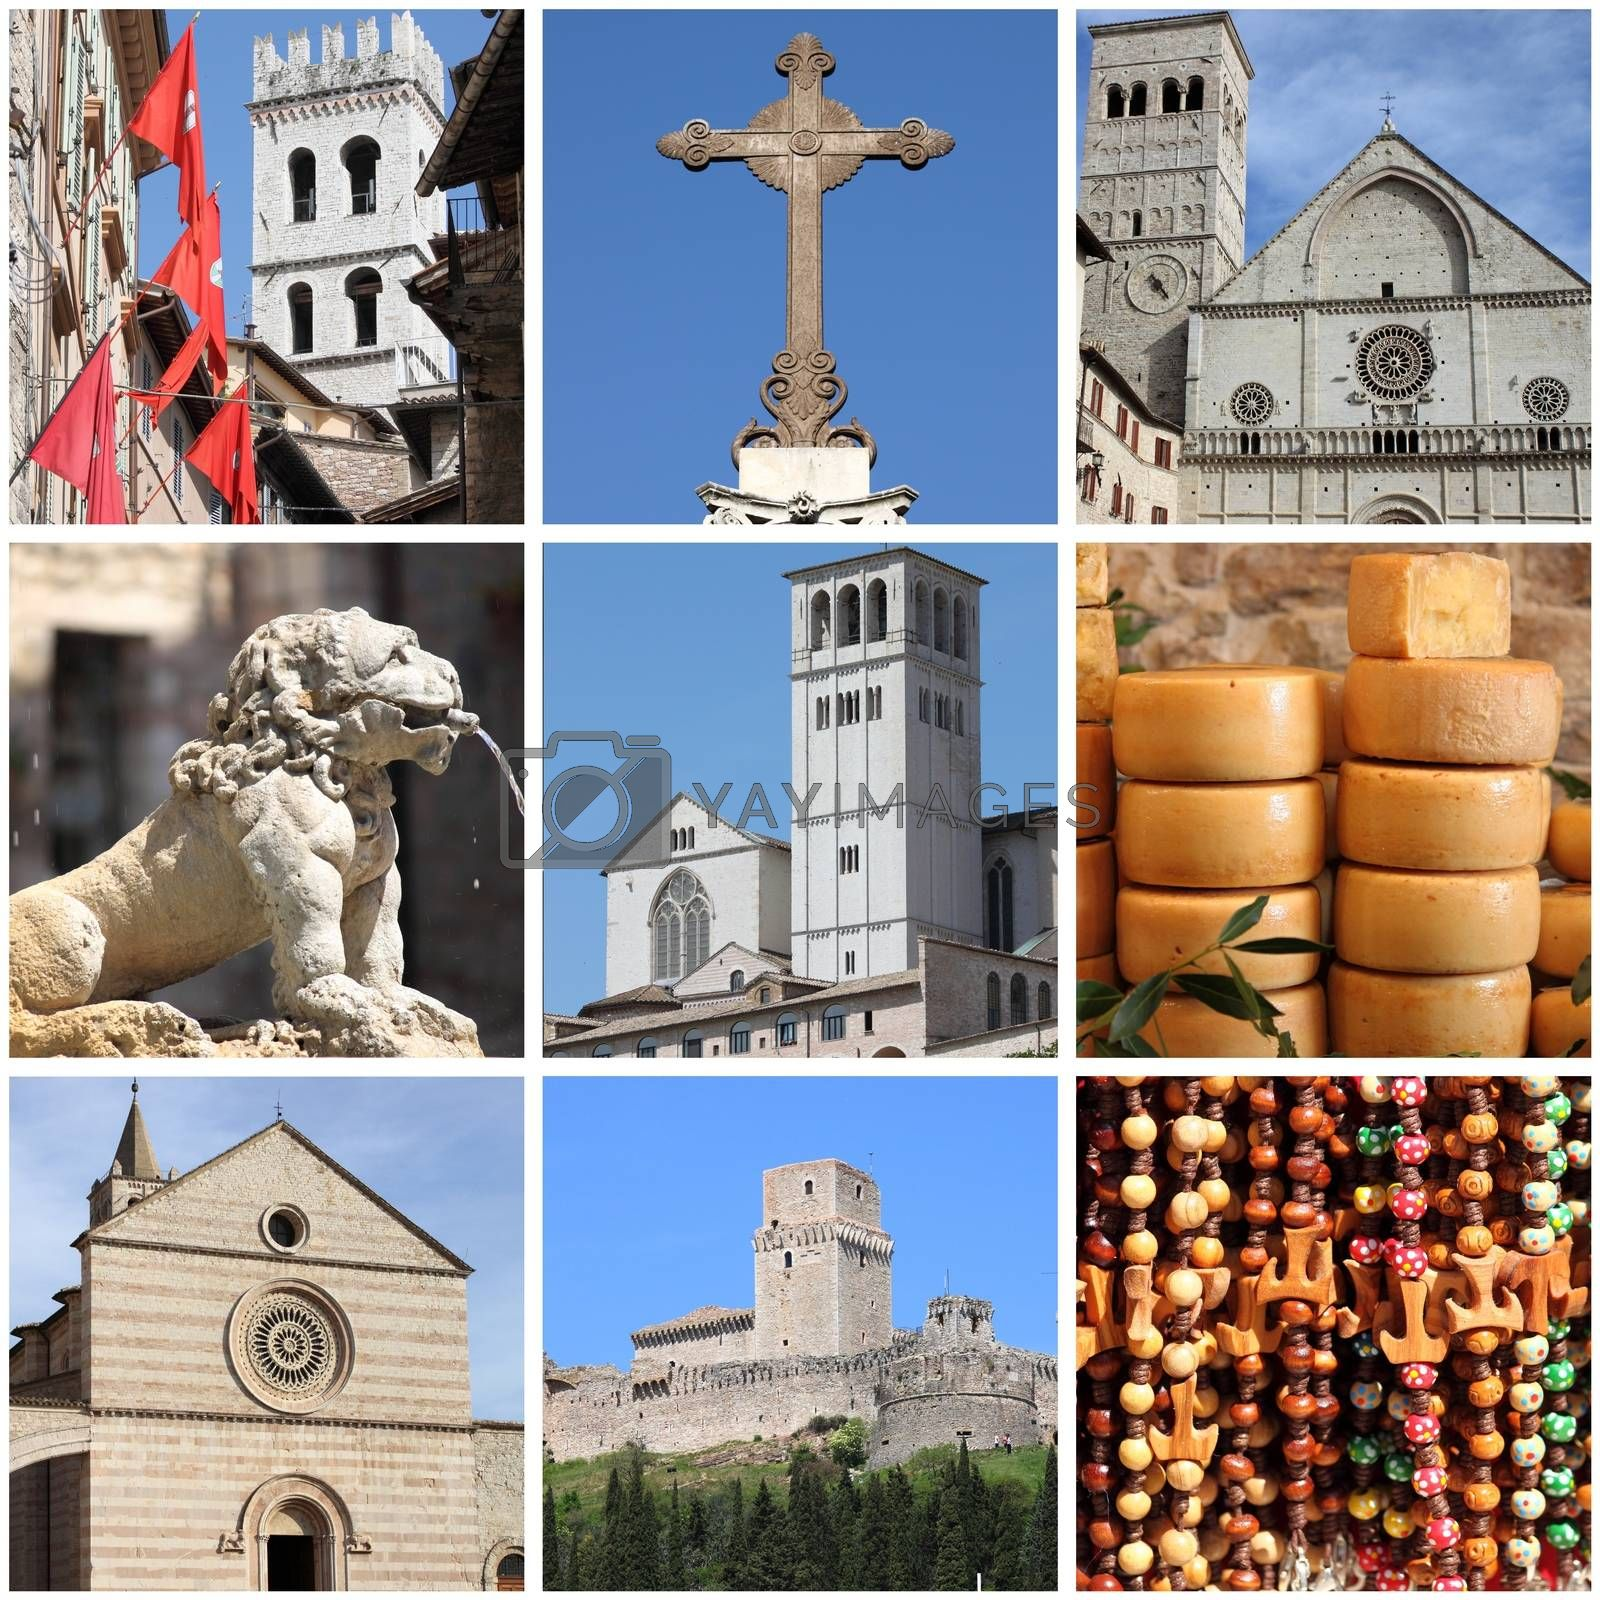 Assisi landmarks collage by alessandro0770